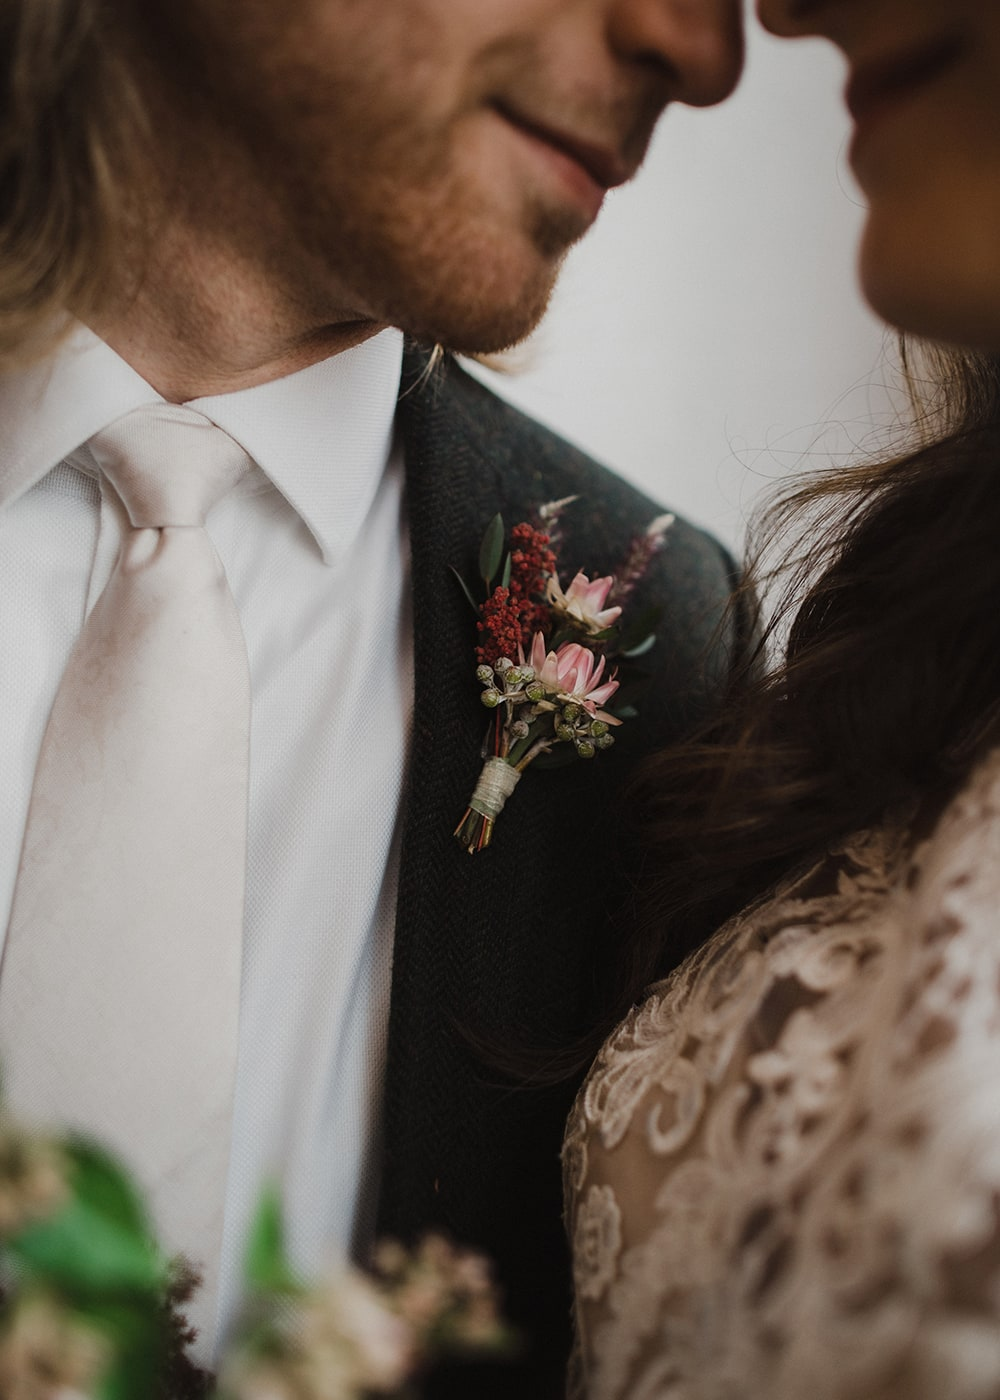 man with boutonniere and wedding tie